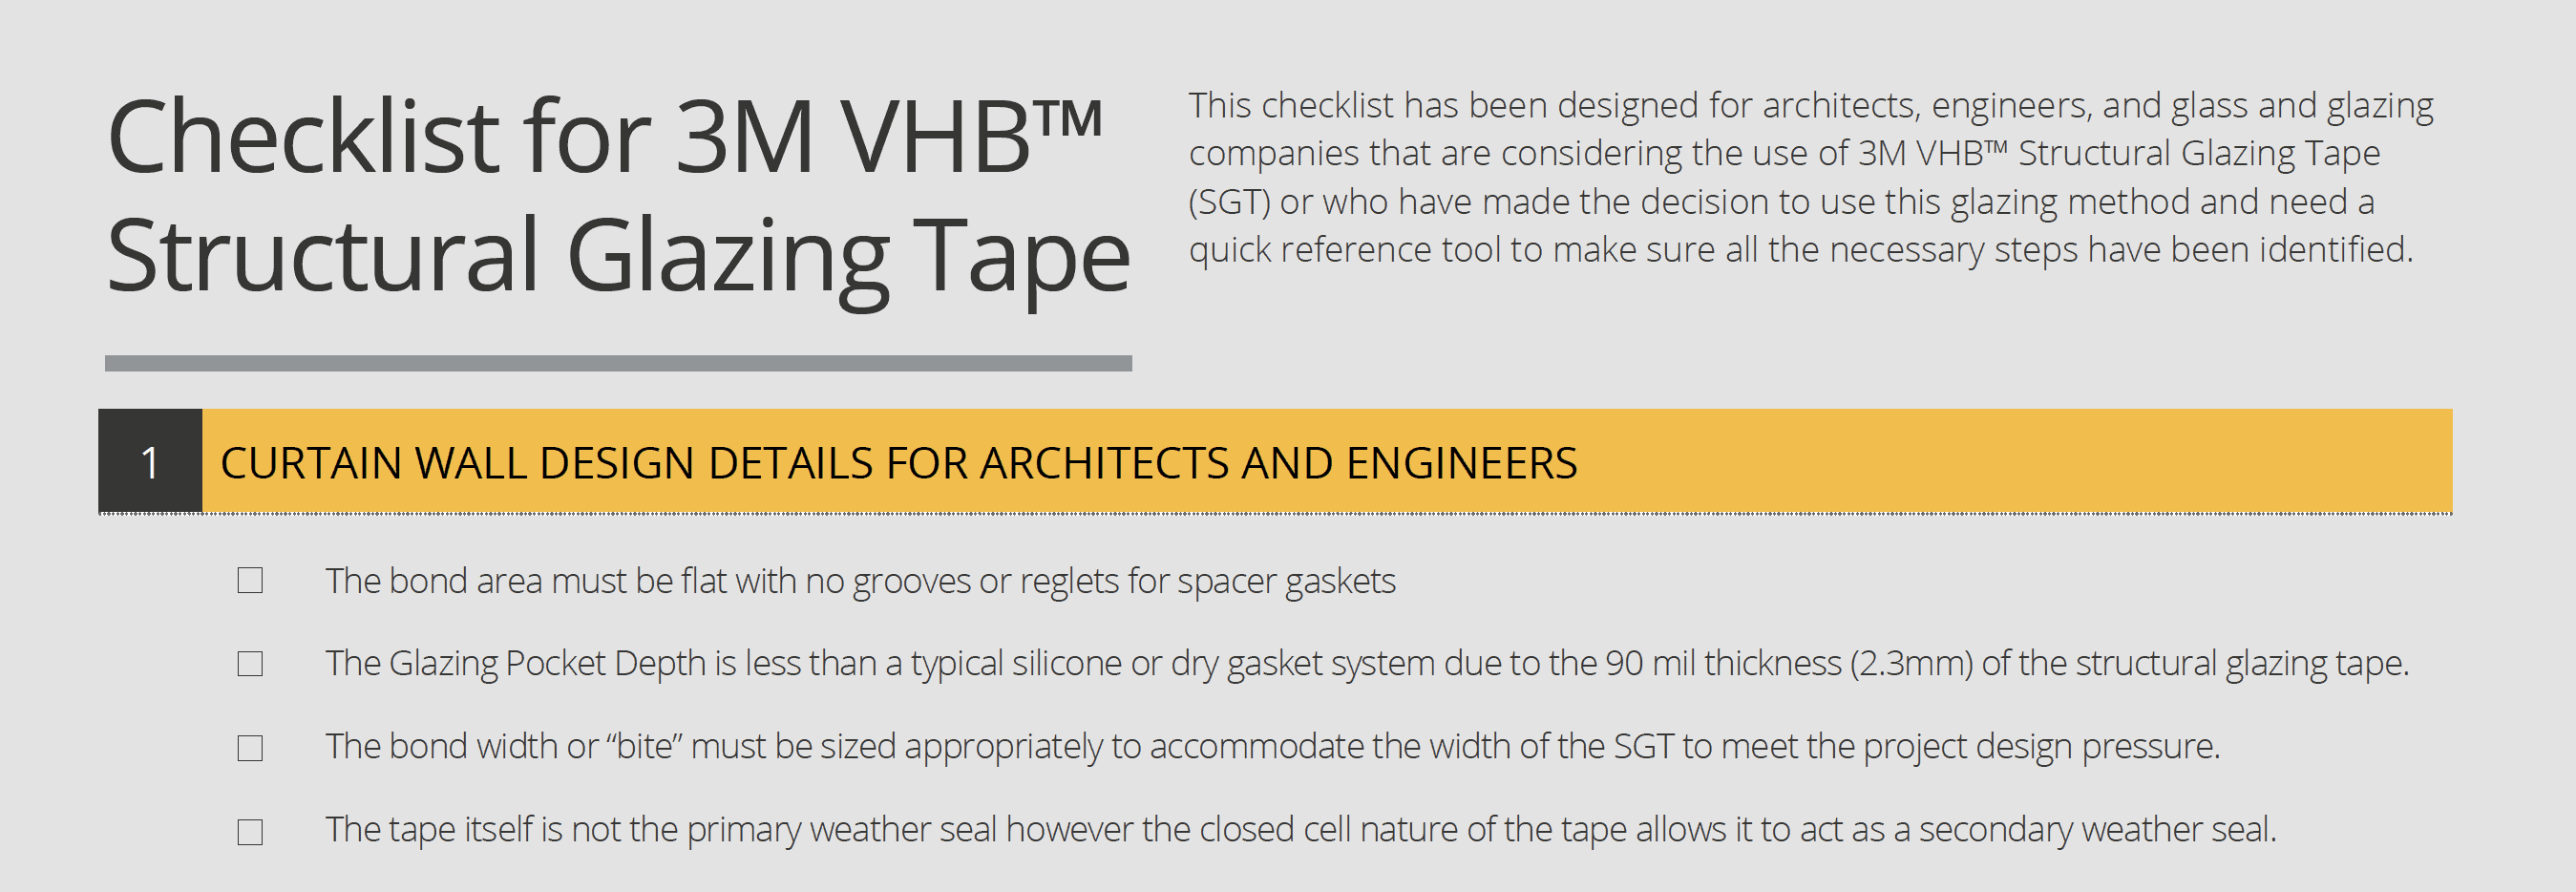 Checklist for 3M VHB